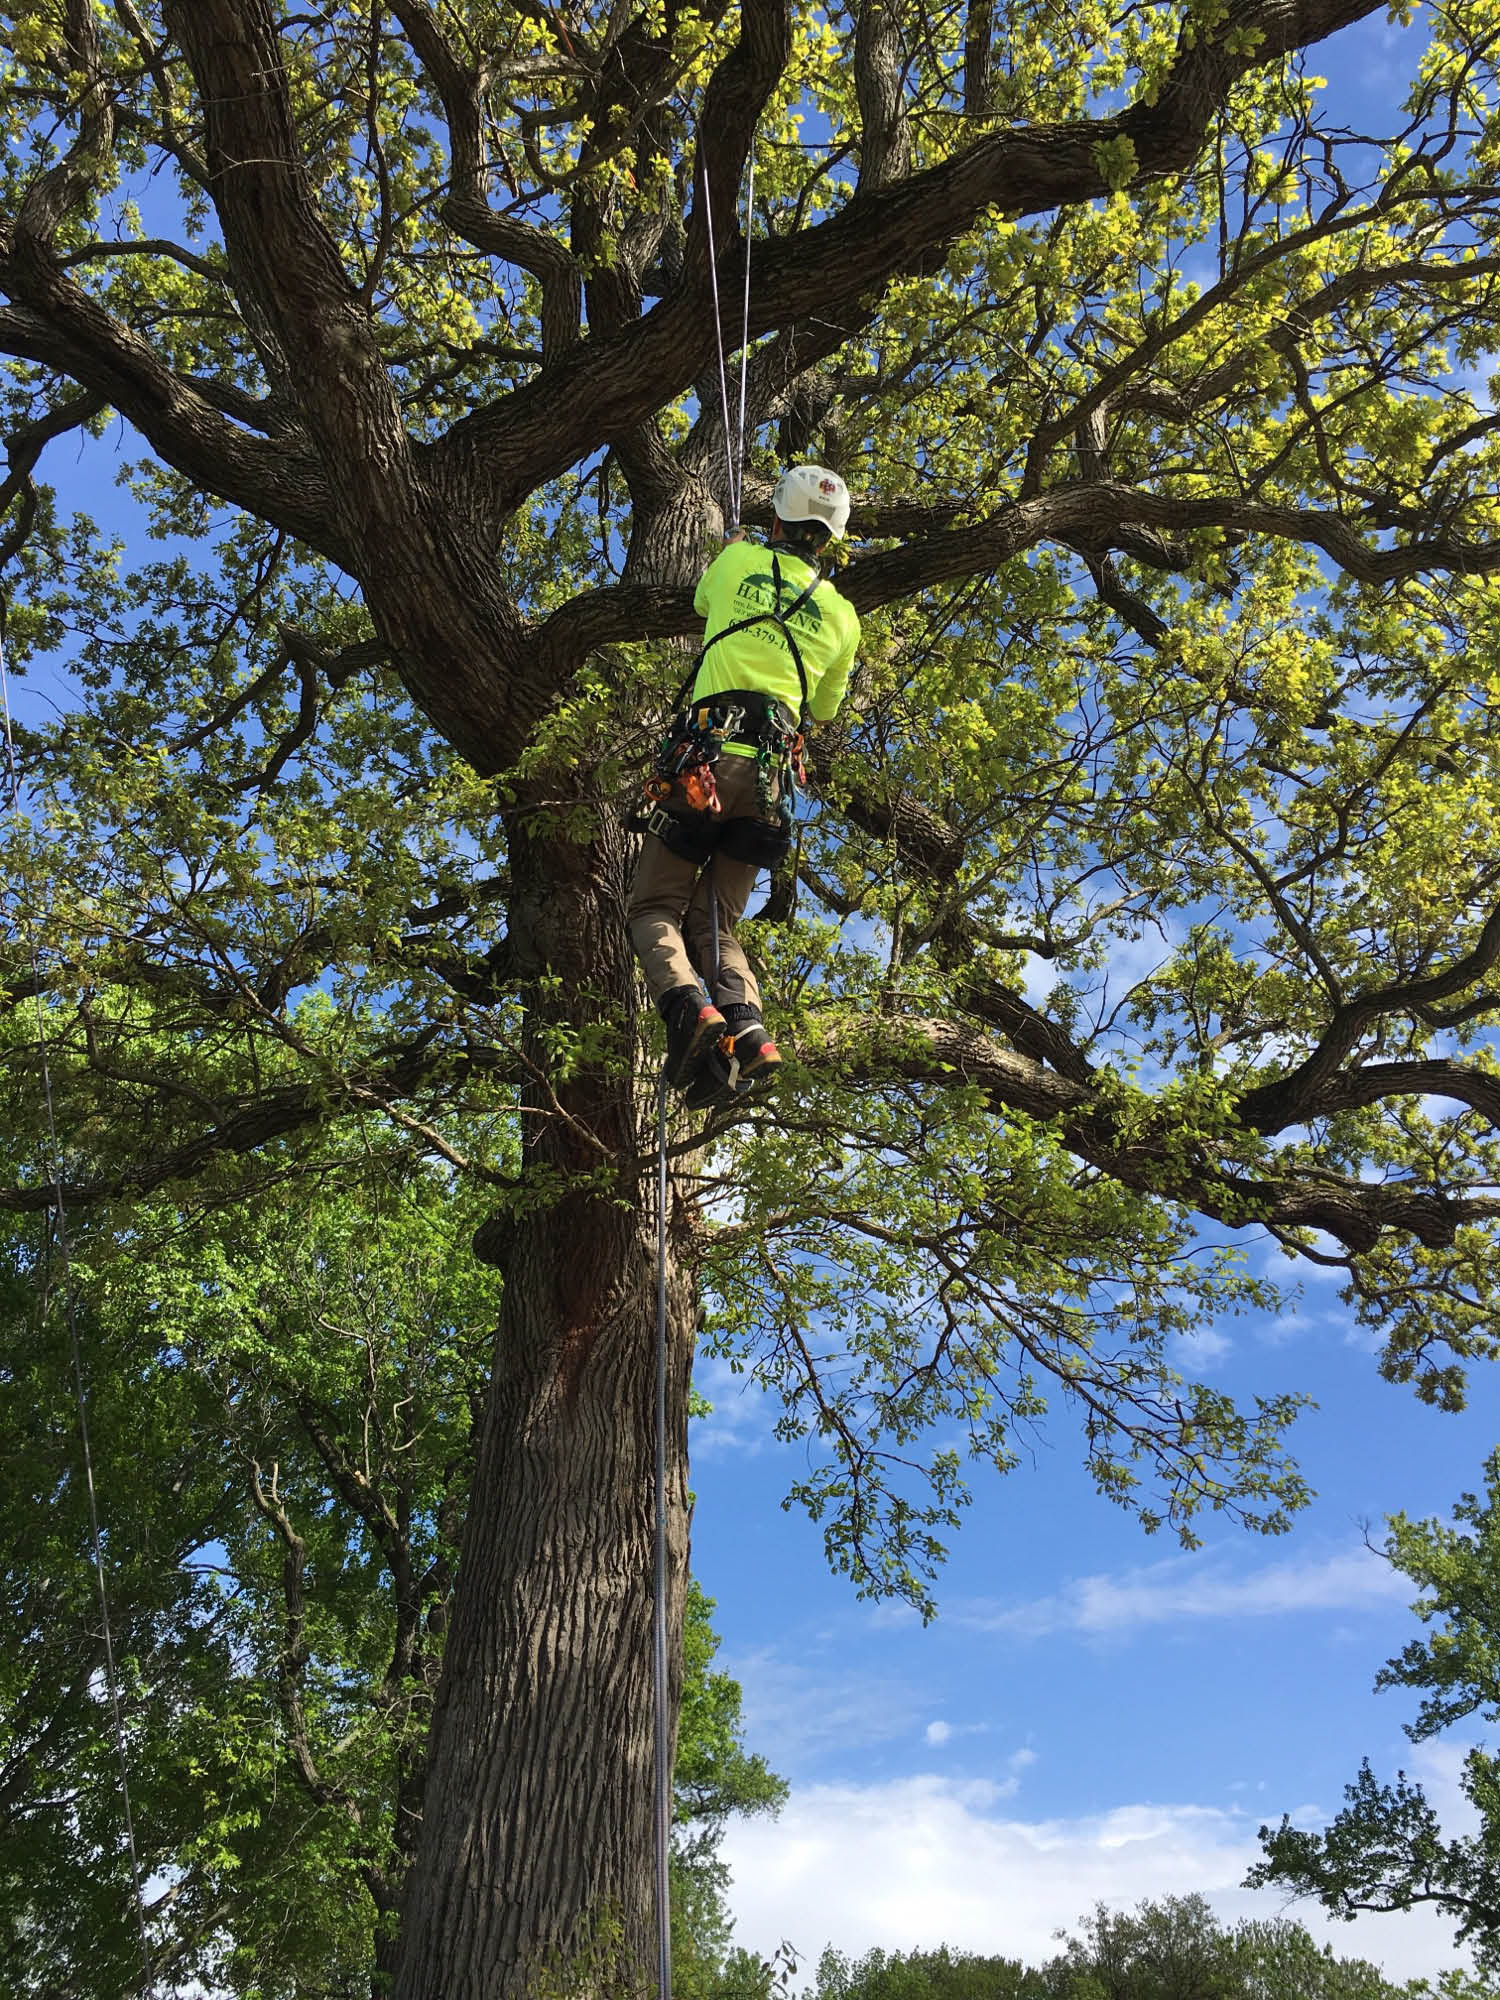 Tree pruning & trimming in St. Louis, MO